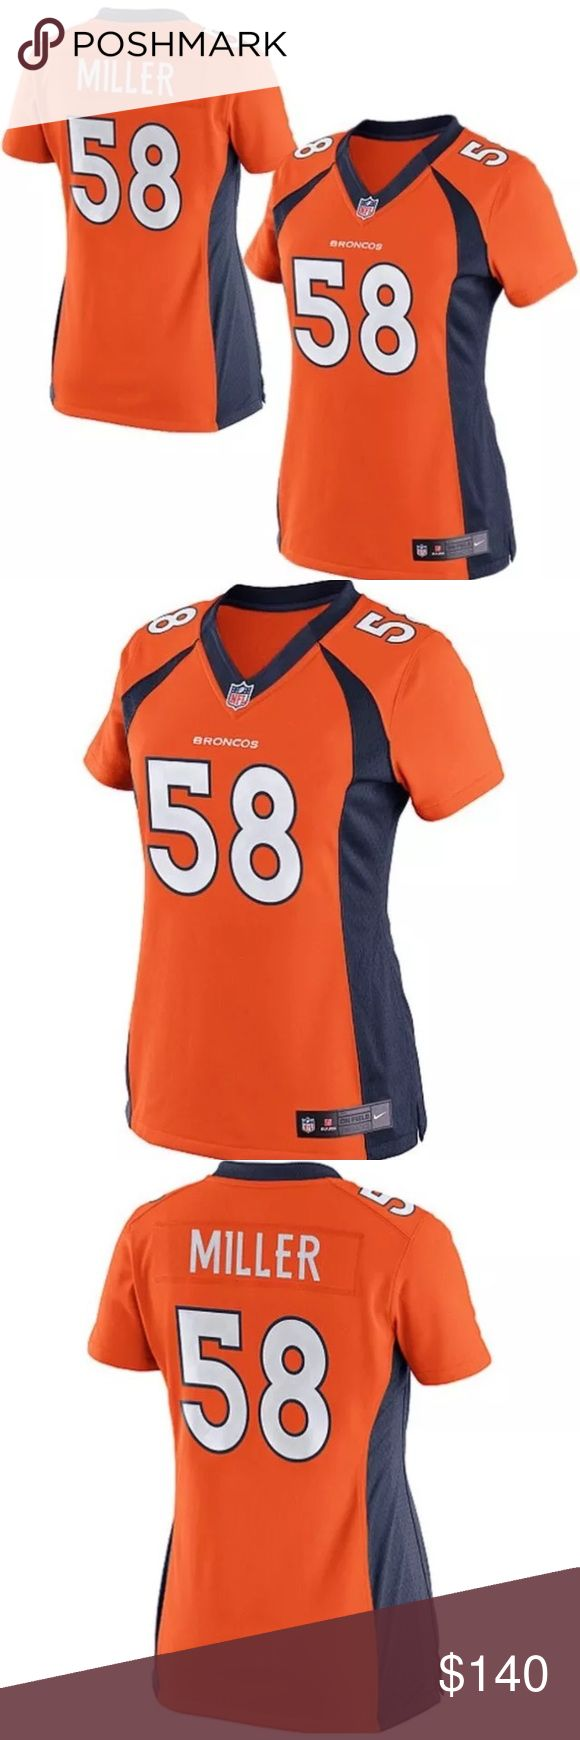 Von Miller Limited Broncos Jersey for Women Women Cut. Brand new with tags. Orange limited jersey. Price is firm!  ✖️Trade Nike Tops